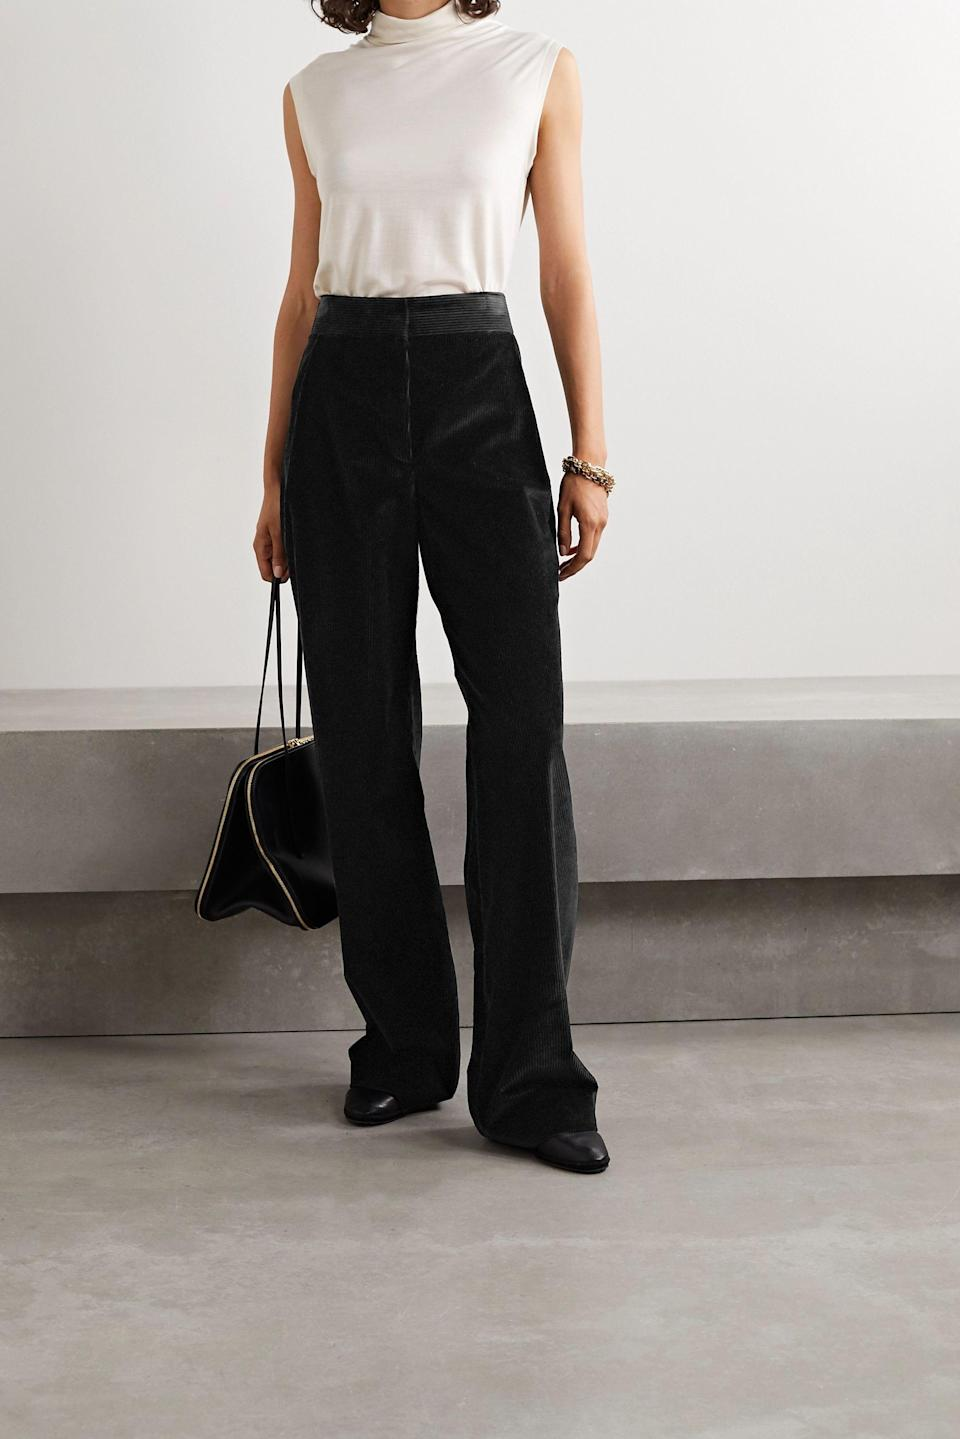 """<br><br><strong>The Row</strong> Caylan Cotton Corduroy Wide Leg Pants, $, available at <a href=""""https://www.net-a-porter.com/en-gb/shop/product/the-row/caylan-cotton-corduroy-wide-leg-pants/1265689"""" rel=""""nofollow noopener"""" target=""""_blank"""" data-ylk=""""slk:Net-A-Porter"""" class=""""link rapid-noclick-resp"""">Net-A-Porter</a>"""